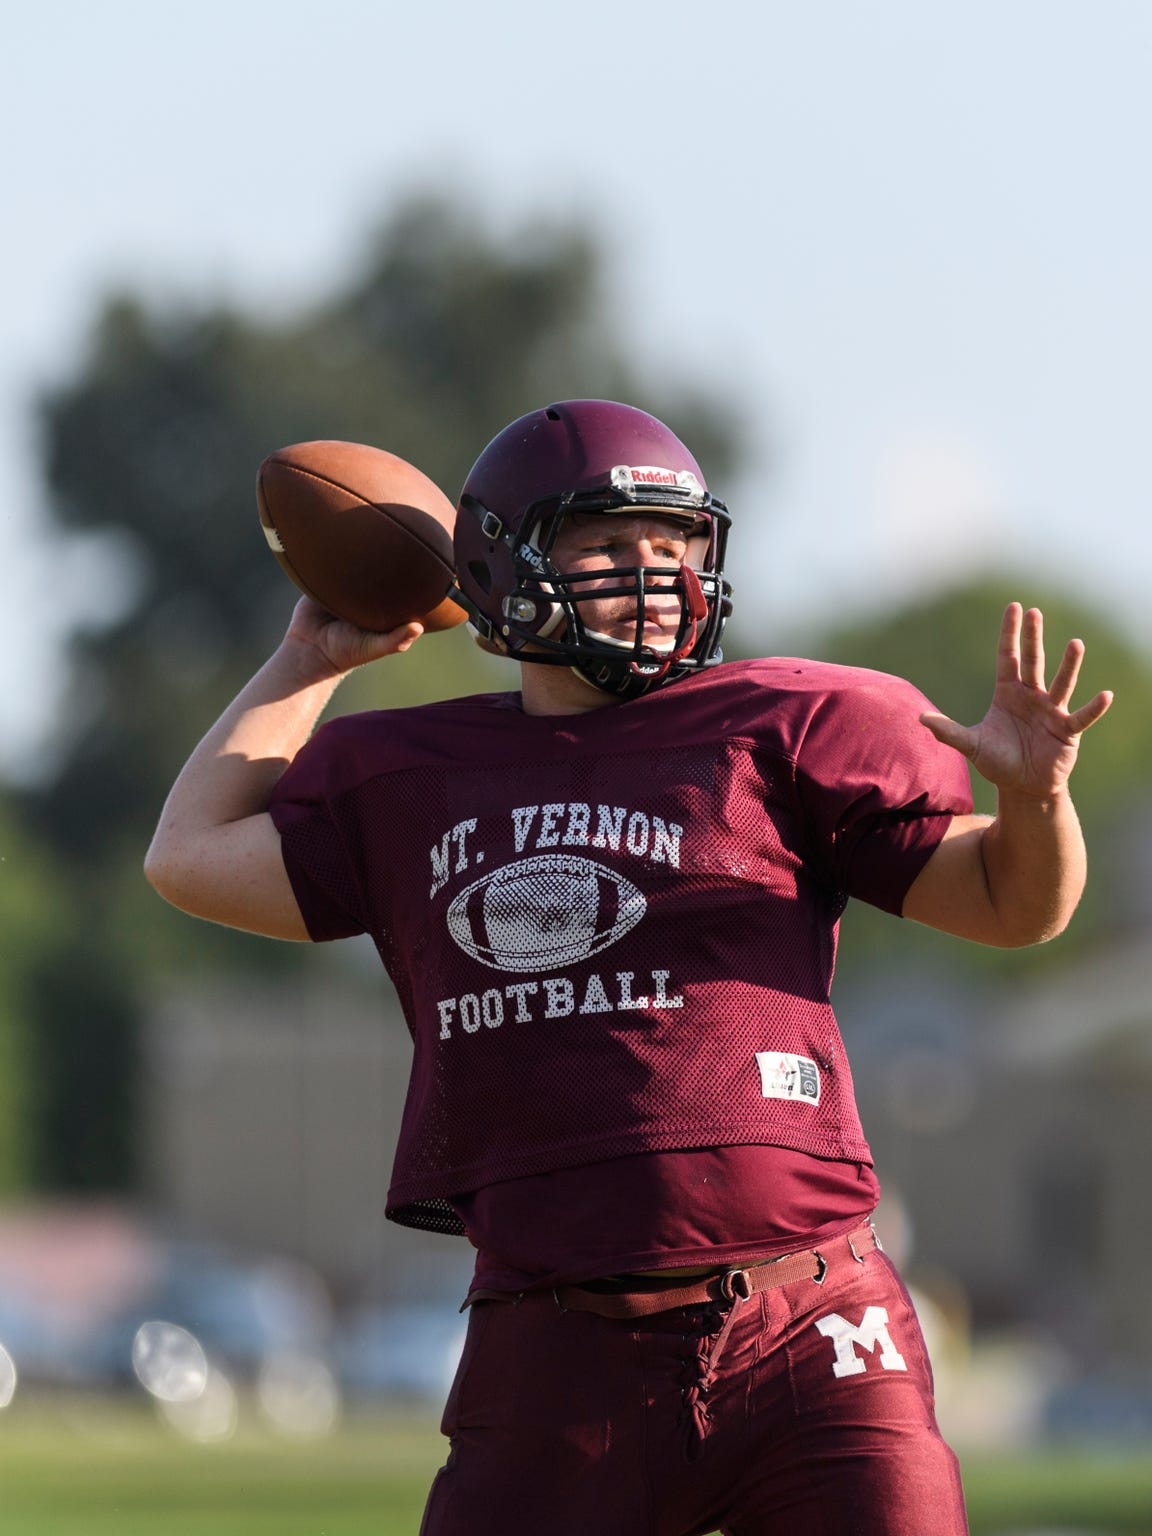 Mount Vernon Quarterback Rhett Snodgrass (7) runs passing drills with his teammates during an after school football practice at Mount Vernon High School in Mount Vernon, Ind., Tuesday, Sept. 18, 2018.